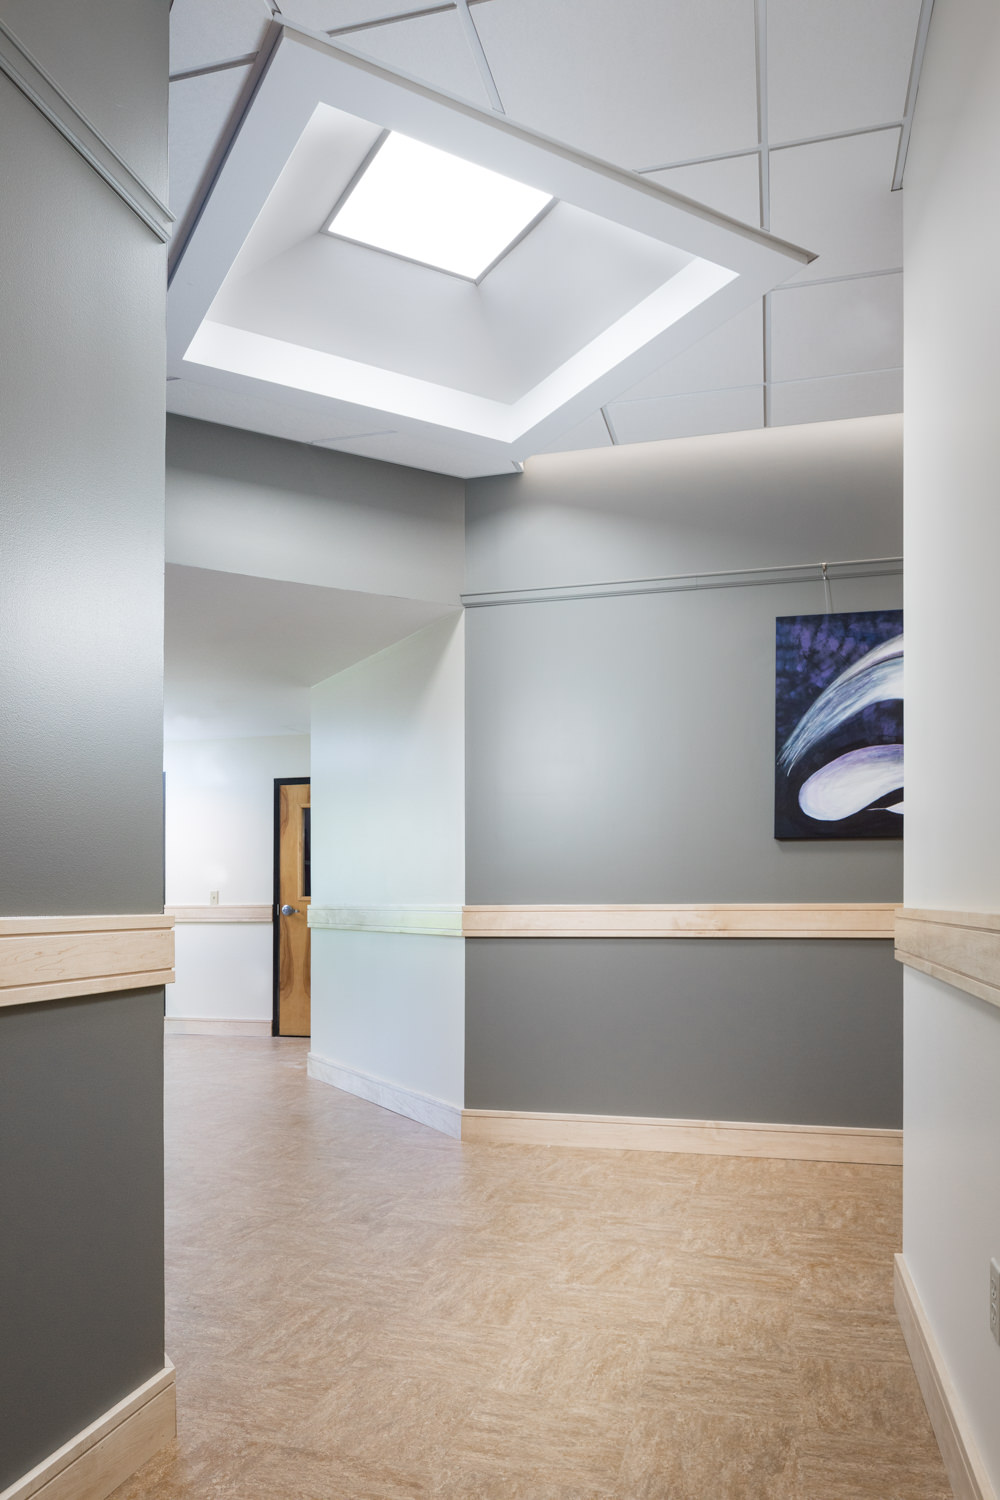 Photo of the naturally lit hallway featuring gray walls and skylight in the Biotek facility in Winooski Vermont by photographer Stina Booth